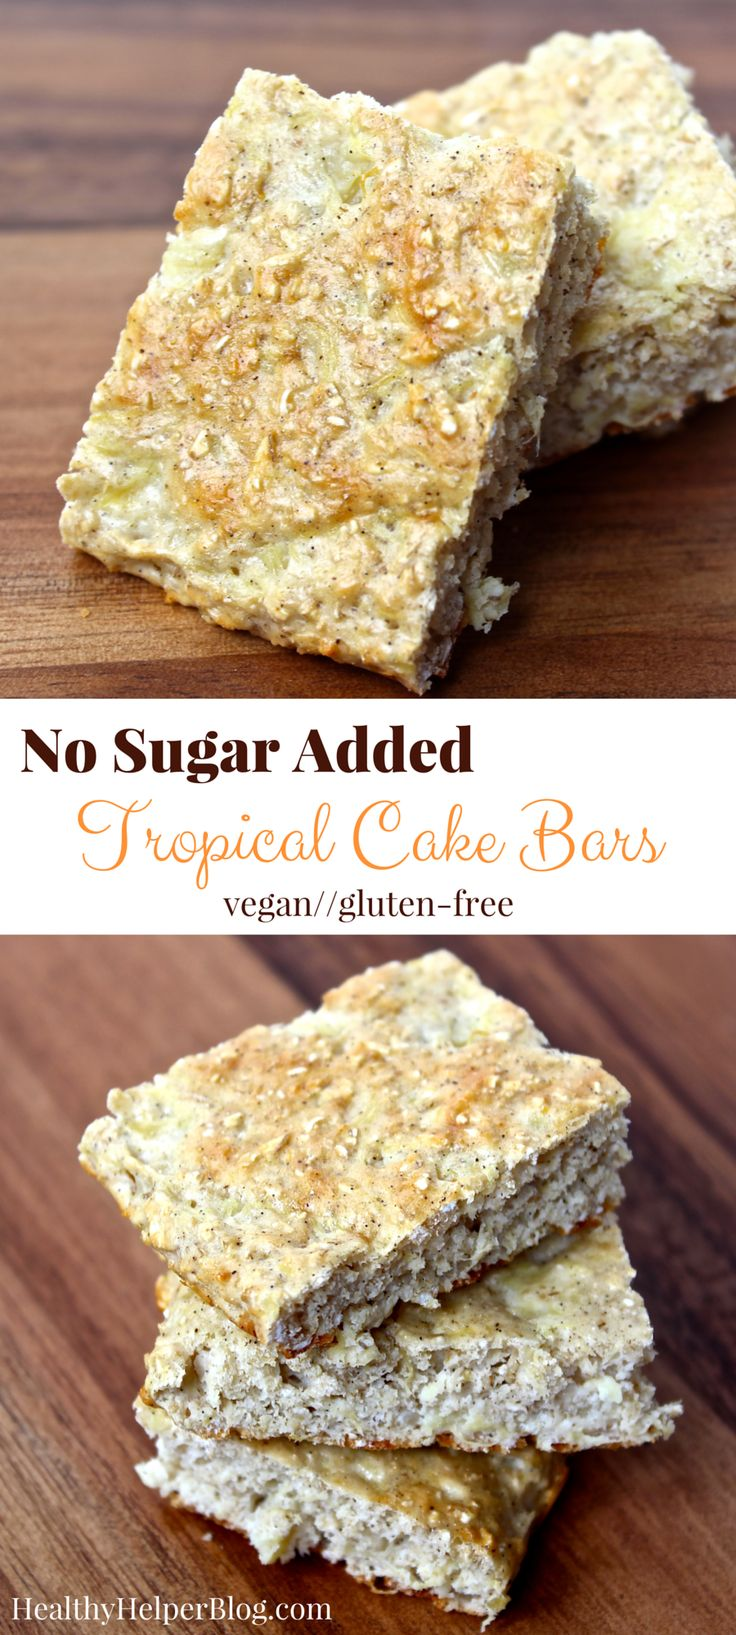 No Sugar Added Tropical Cake Bars | @Healthy_Helper Sweet, tropical cake bars that serve as the perfect summer snack! Soft and doughy, these bars will take your tastebuds on vacation without ever leaving your home. Gluten-free, vegan, and only sweetened with fruit!